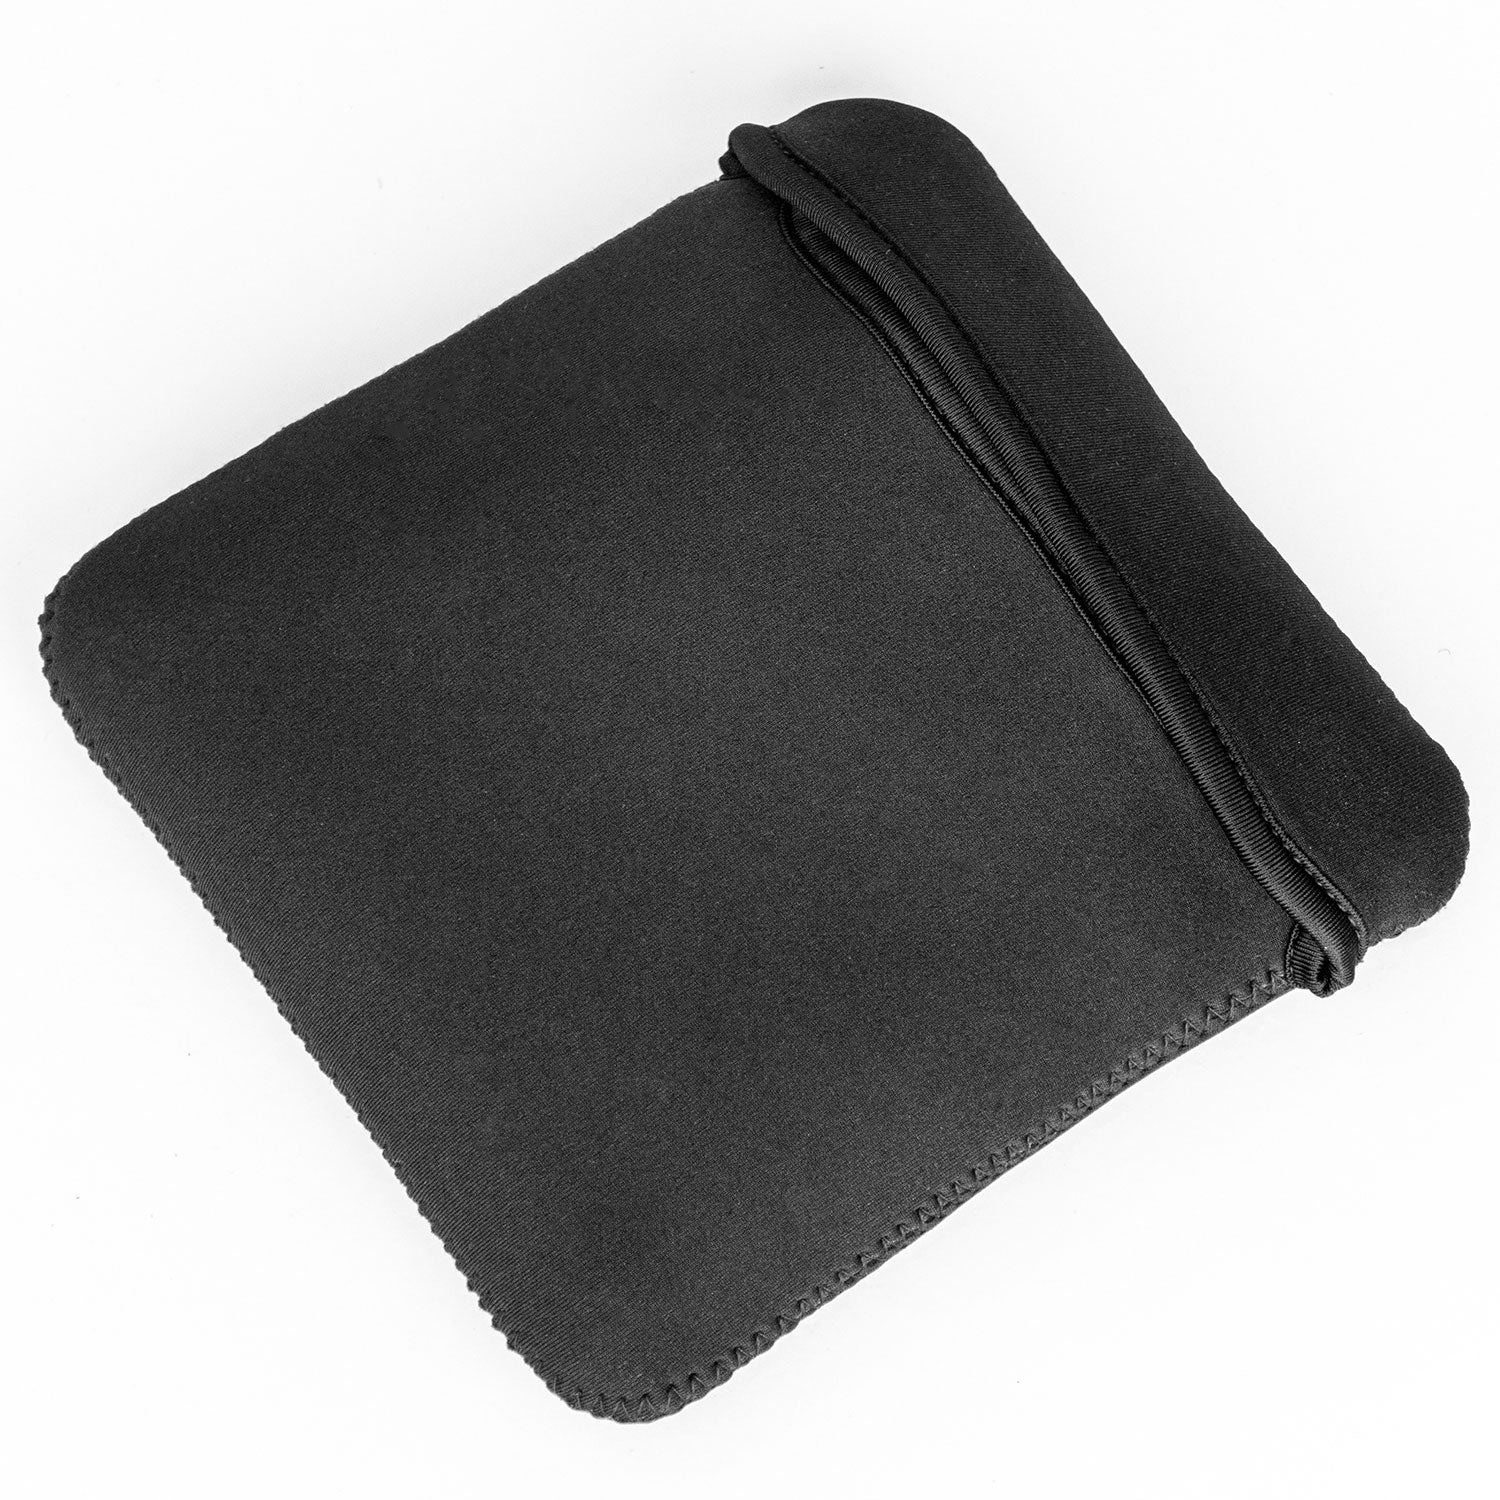 Grifiti Chiton 7 Inch Neoprene Sleeve for Superdrive Hard Drives Trackpads Accessories - Grifiti